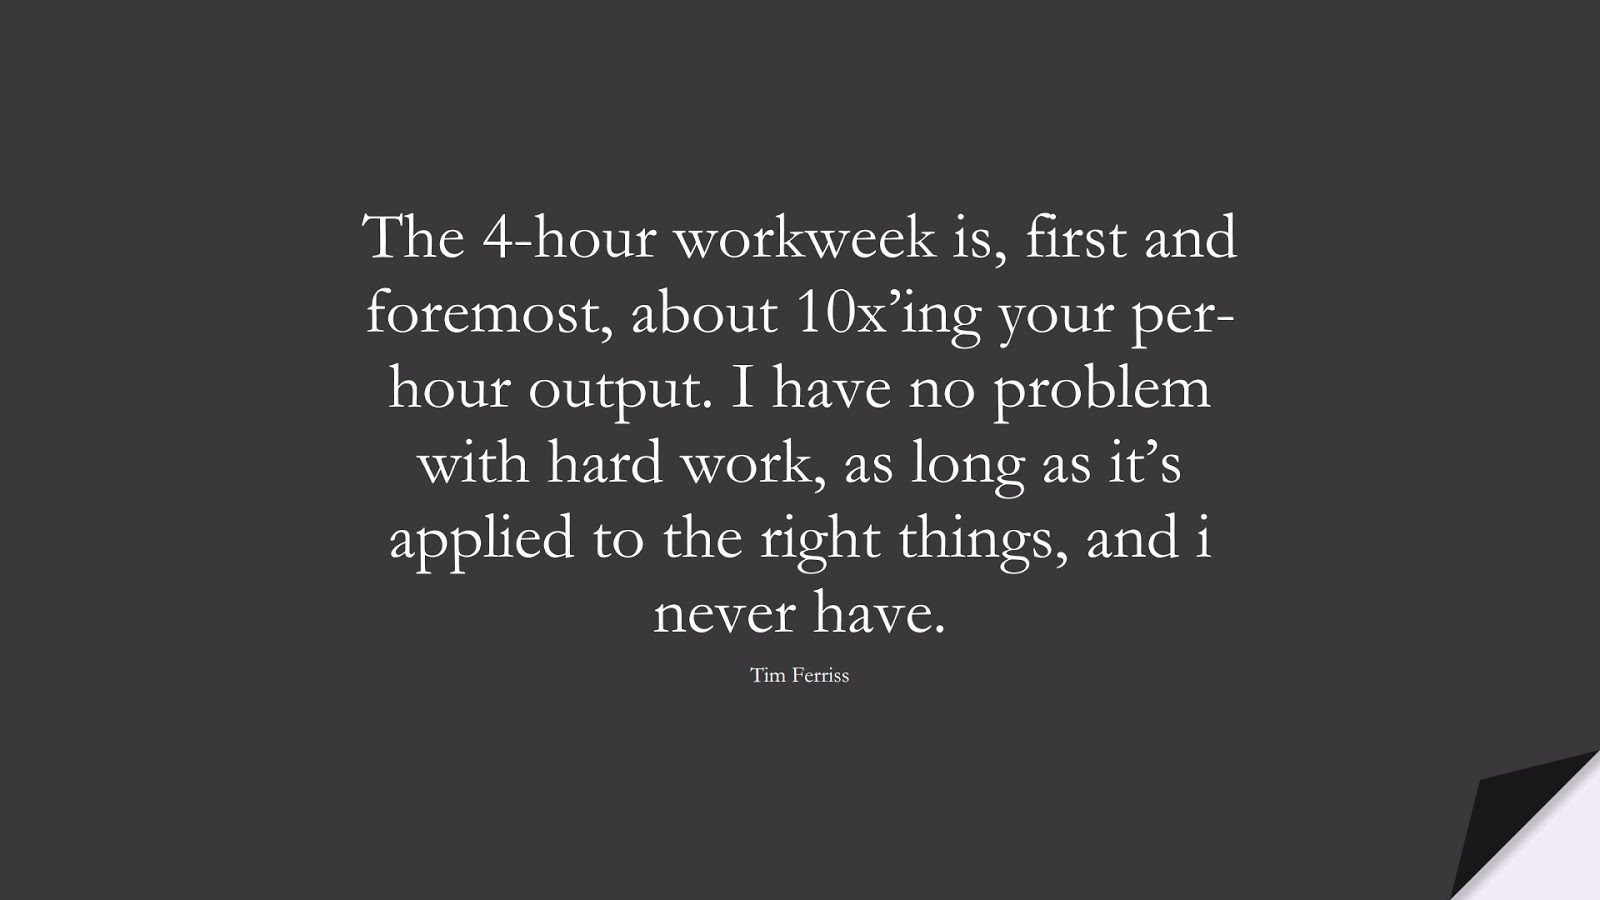 The 4-hour workweek is, first and foremost, about 10x'ing your per-hour output. I have no problem with hard work, as long as it's applied to the right things, and i never have. (Tim Ferriss);  #TimFerrissQuotes